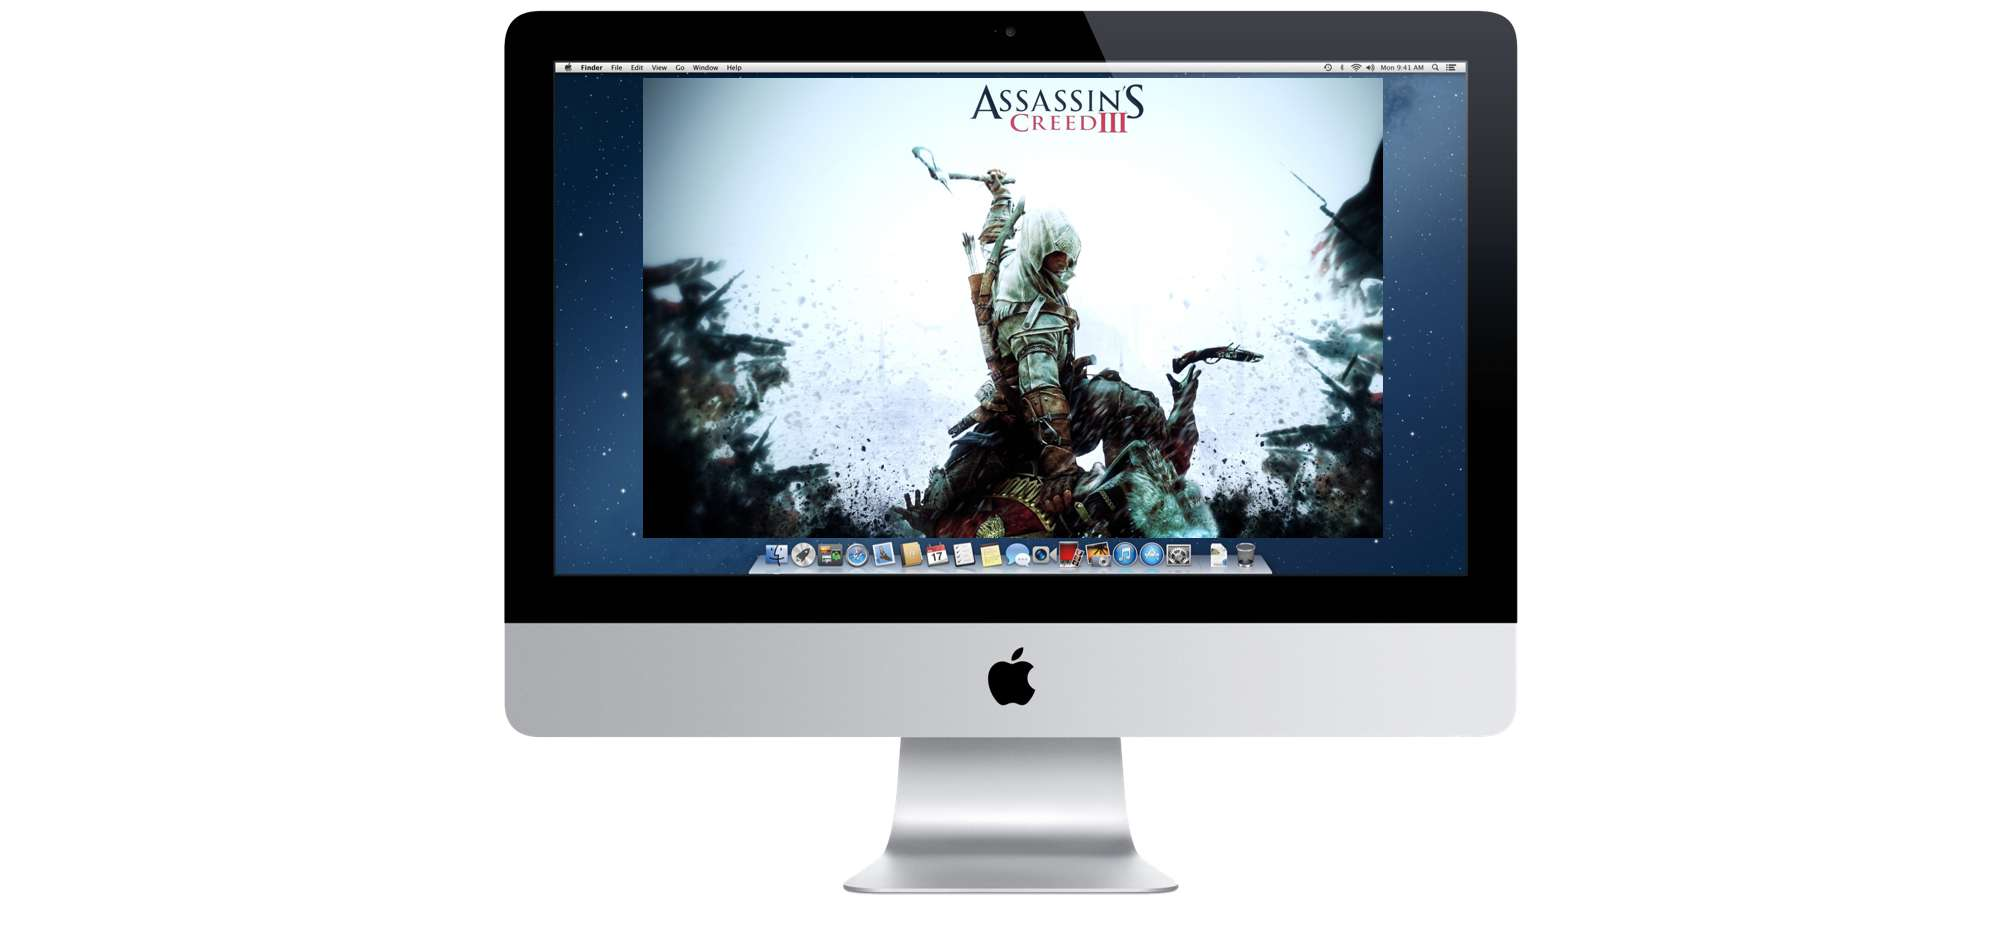 Juegos en Mac: Assassins Creed 3 | Hablando de Manzanas